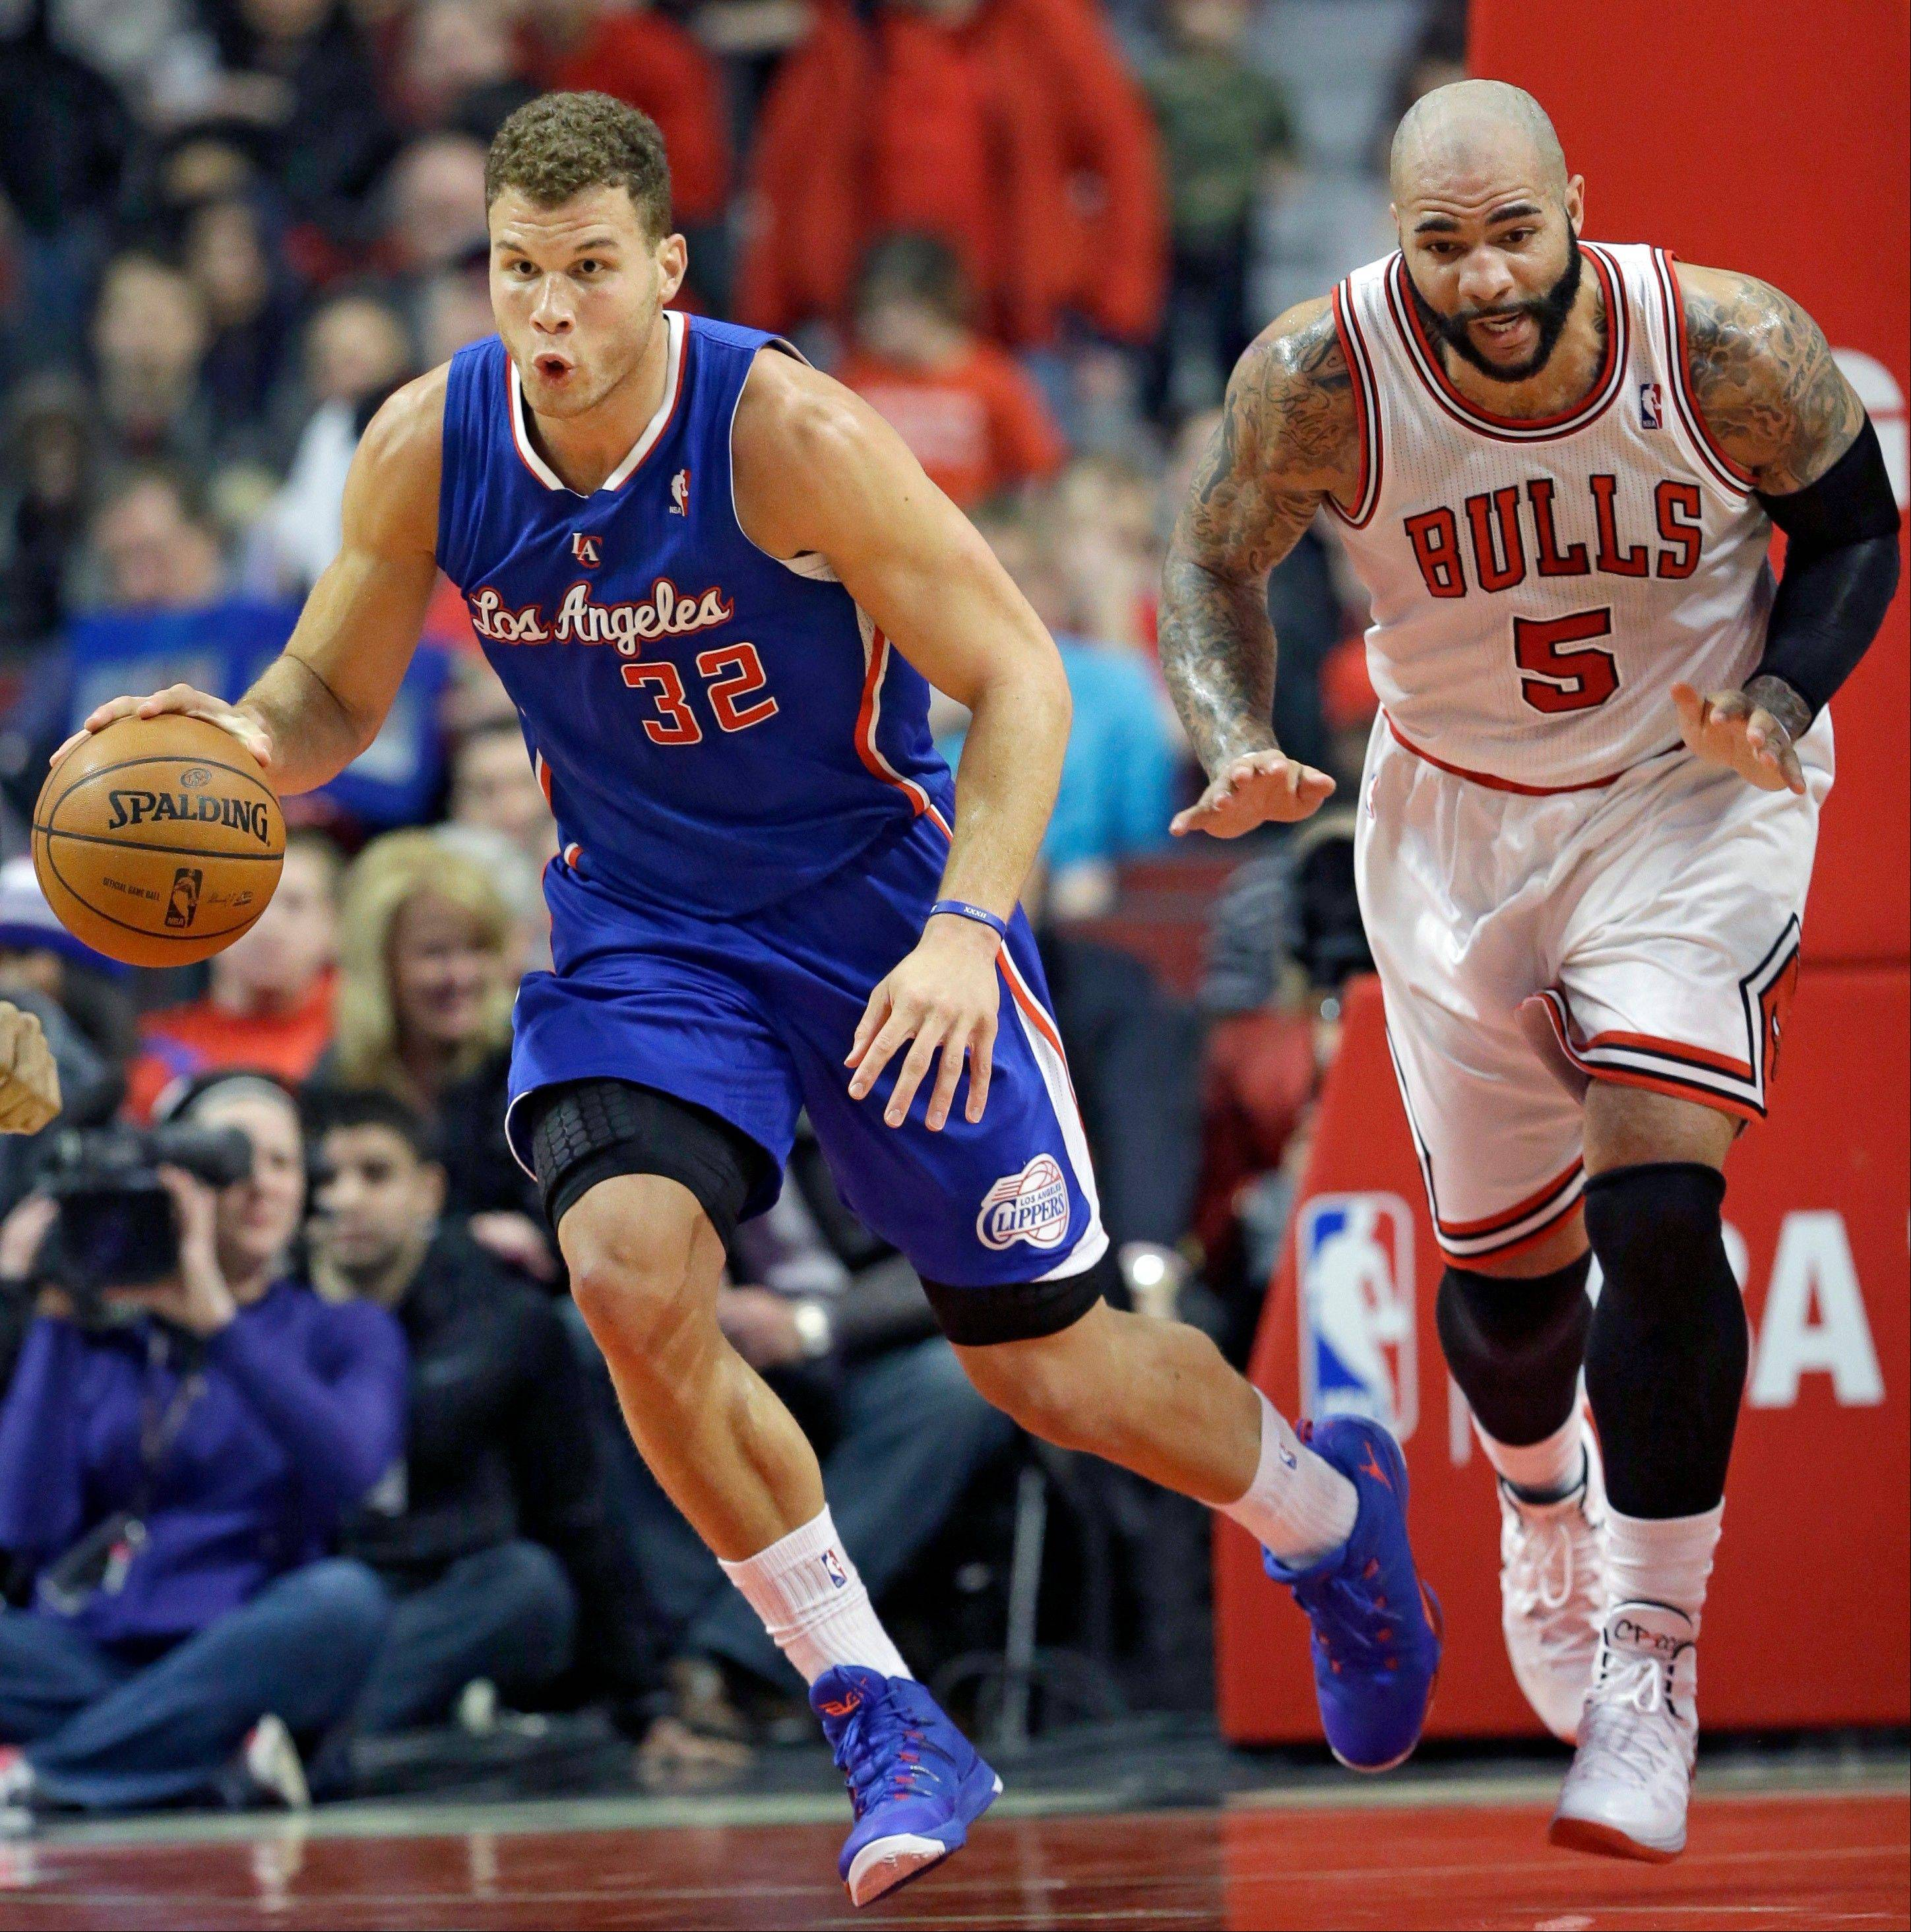 Los Angeles Clippers forward Blake Griffin, left, controls the ball against Chicago Bulls forward Carlos Boozer during Friday night�s game at the United Center.